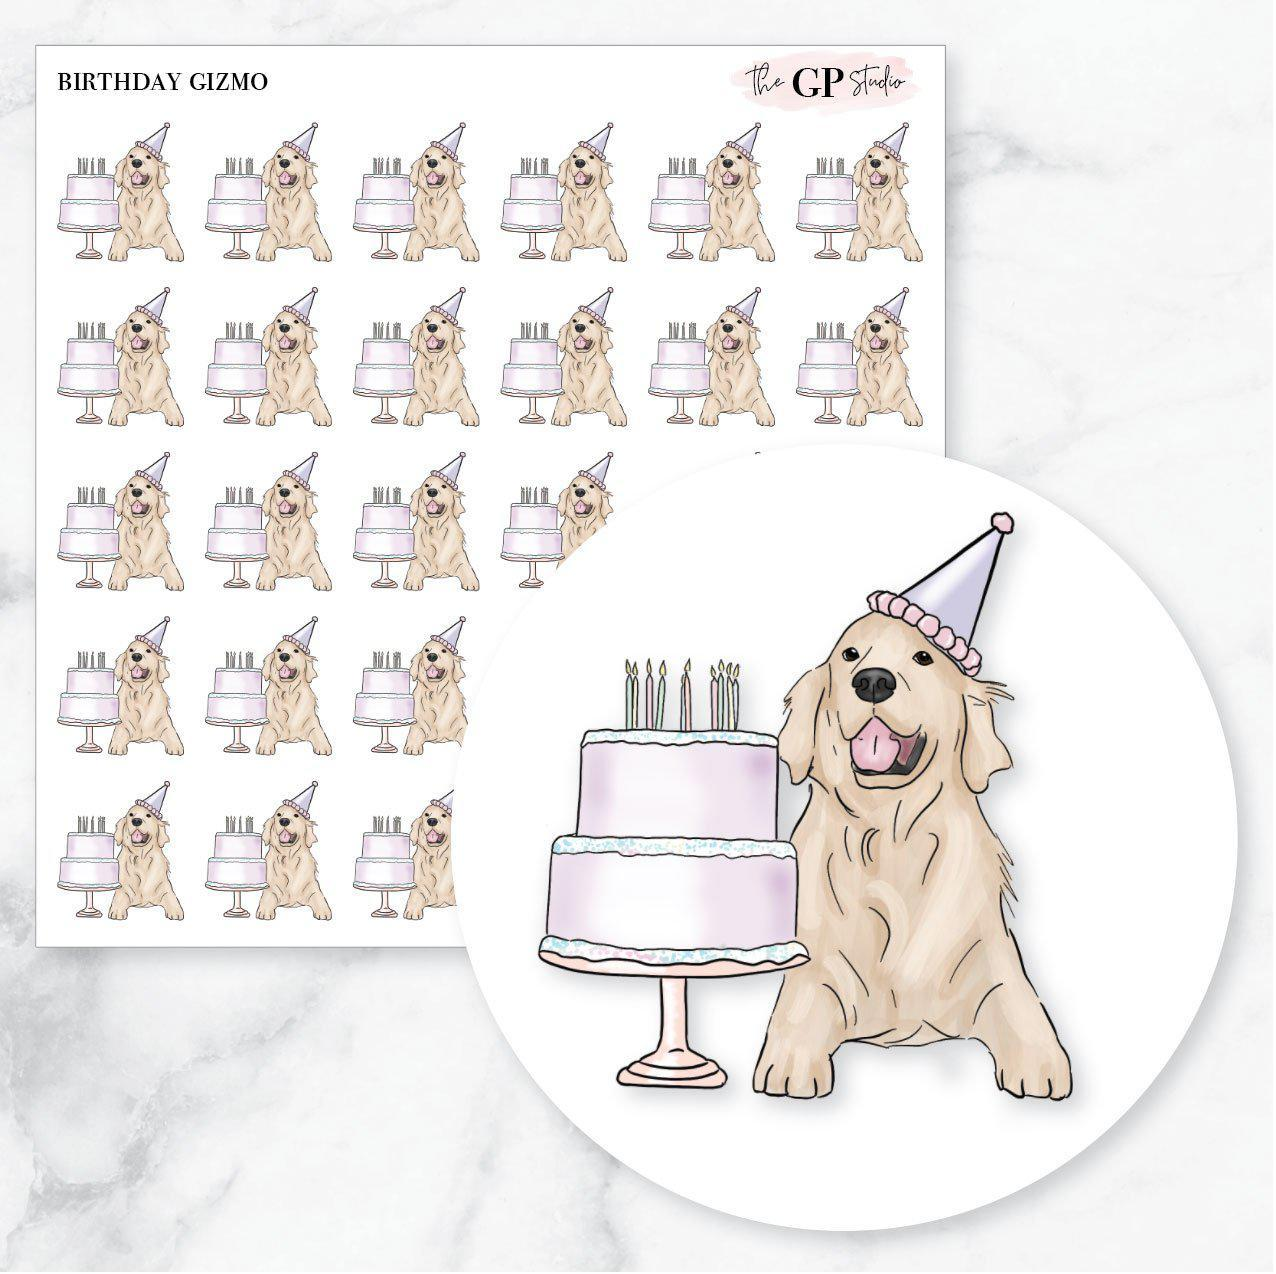 BIRTHDAY GIZMO Planner Stickers-The GP Studio